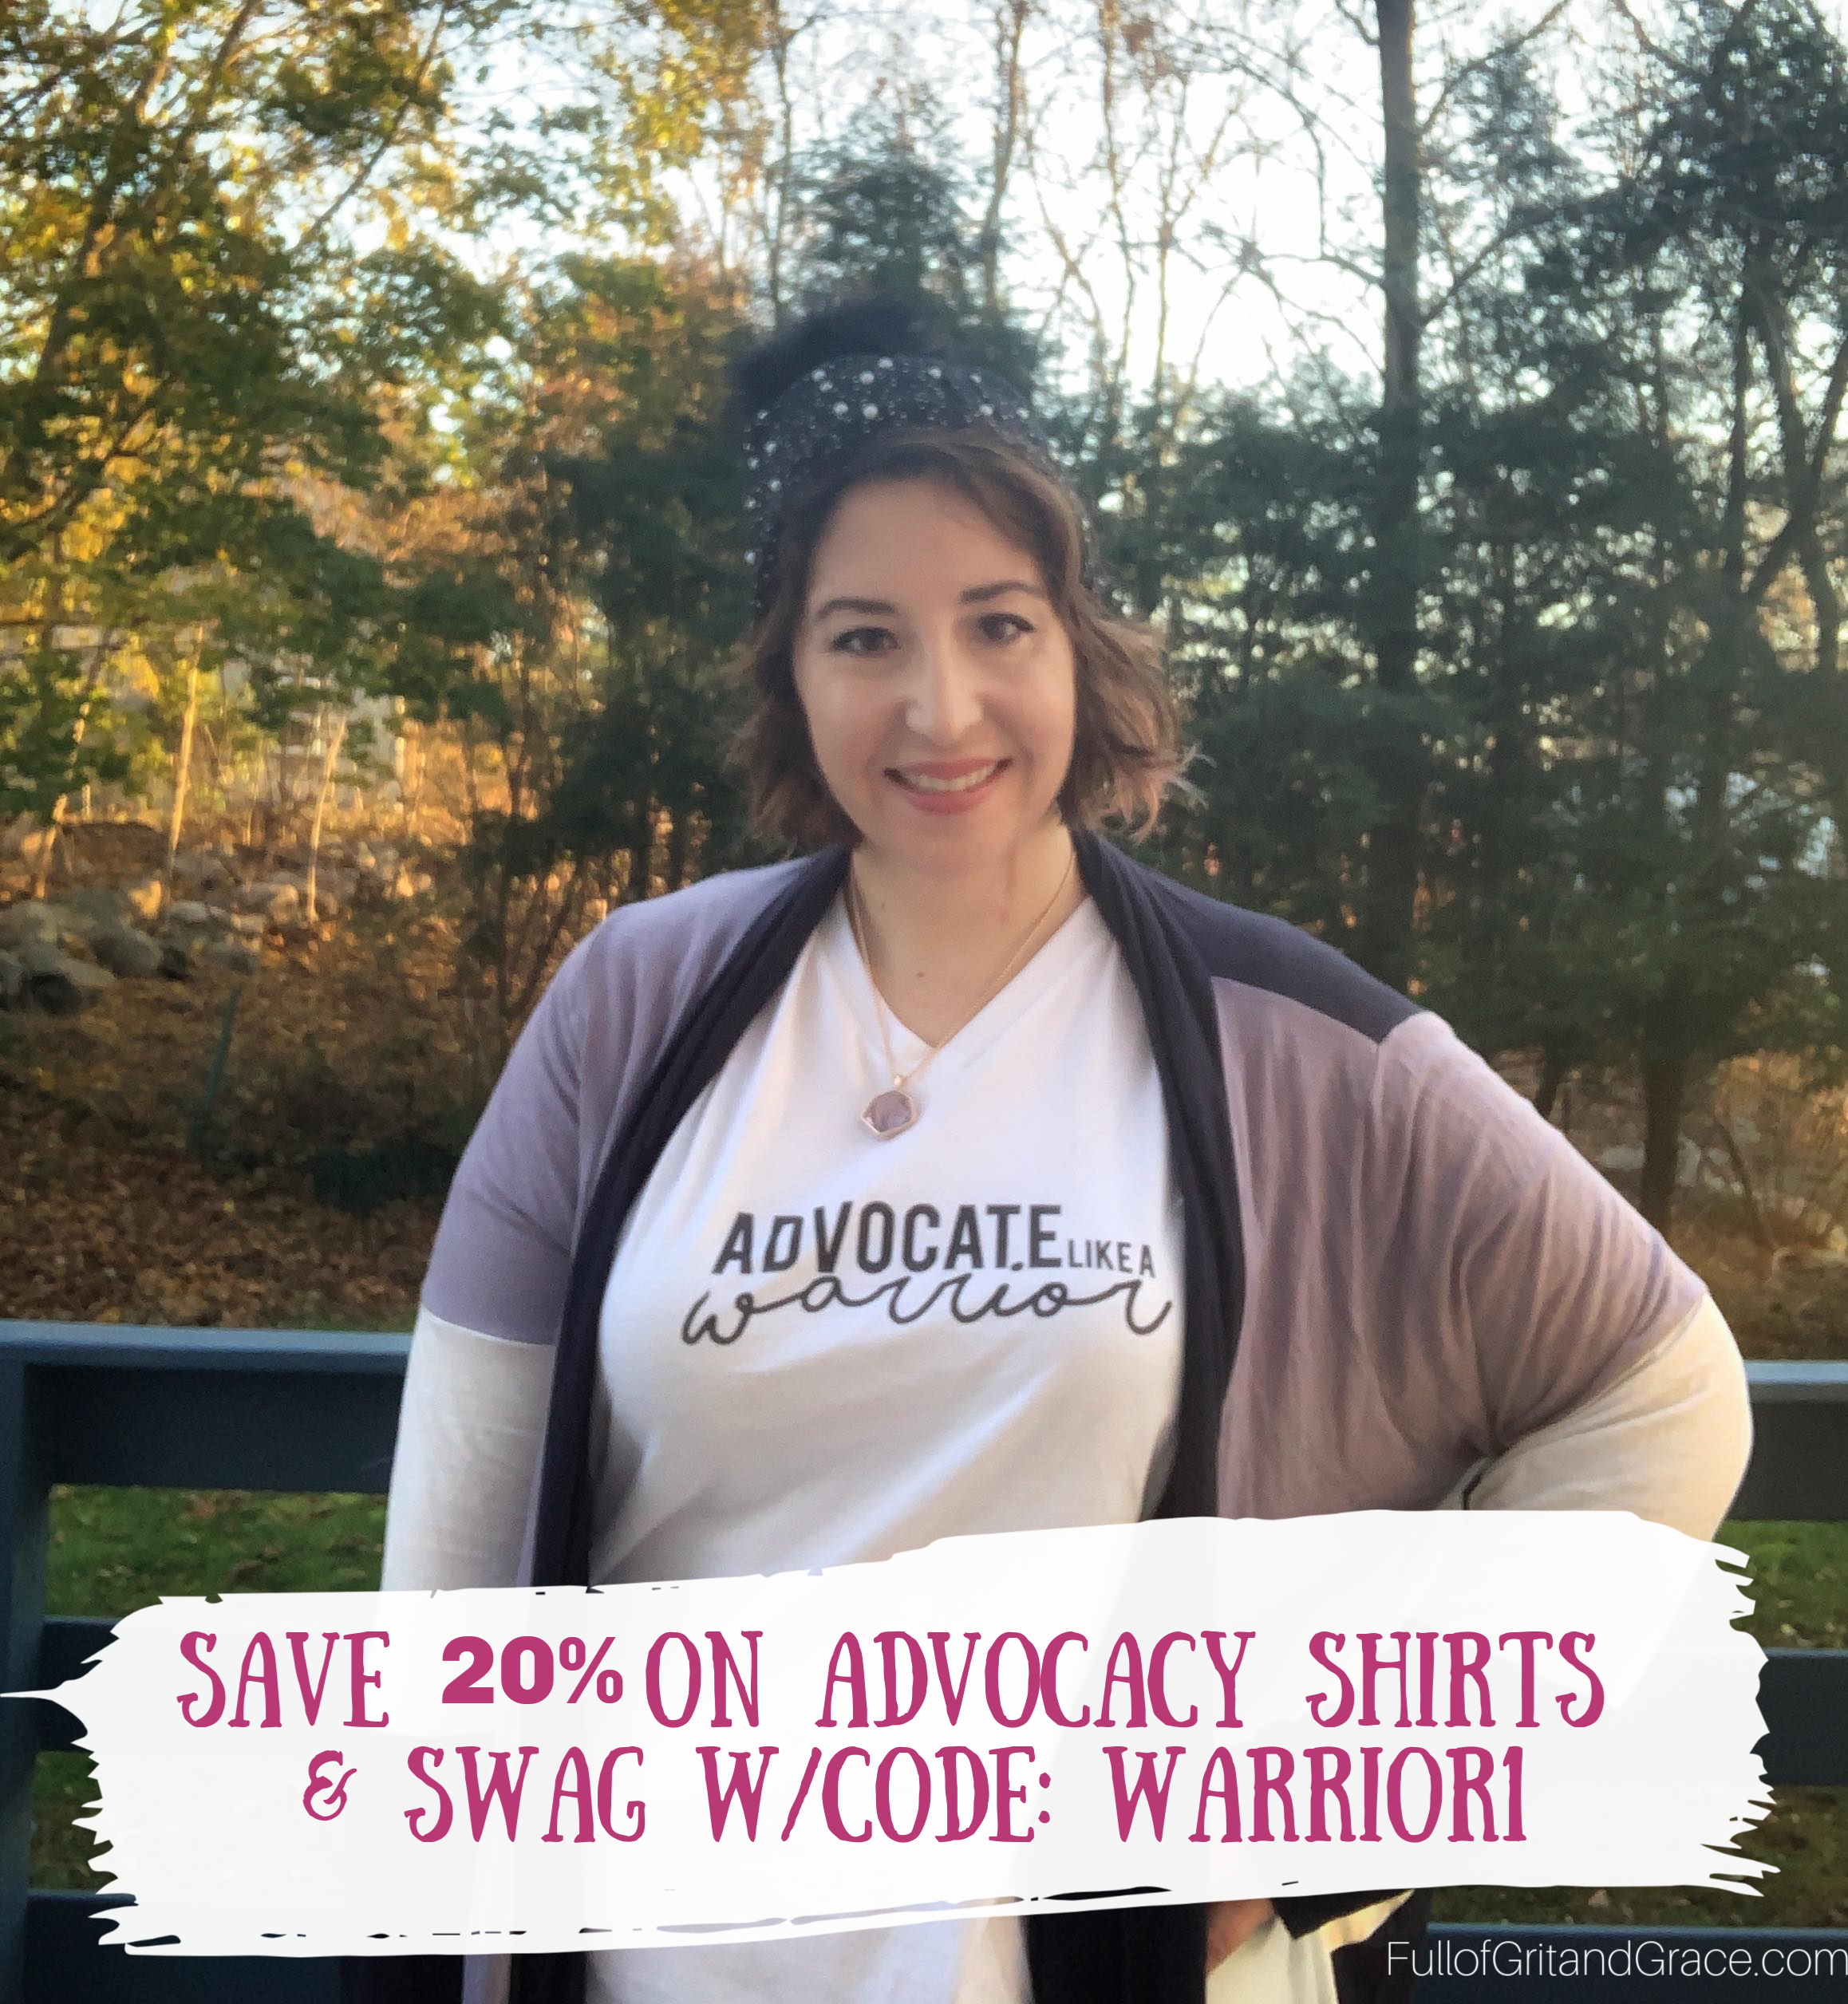 Save 20% of on advocacy shirts and swag with code WARRIOR1